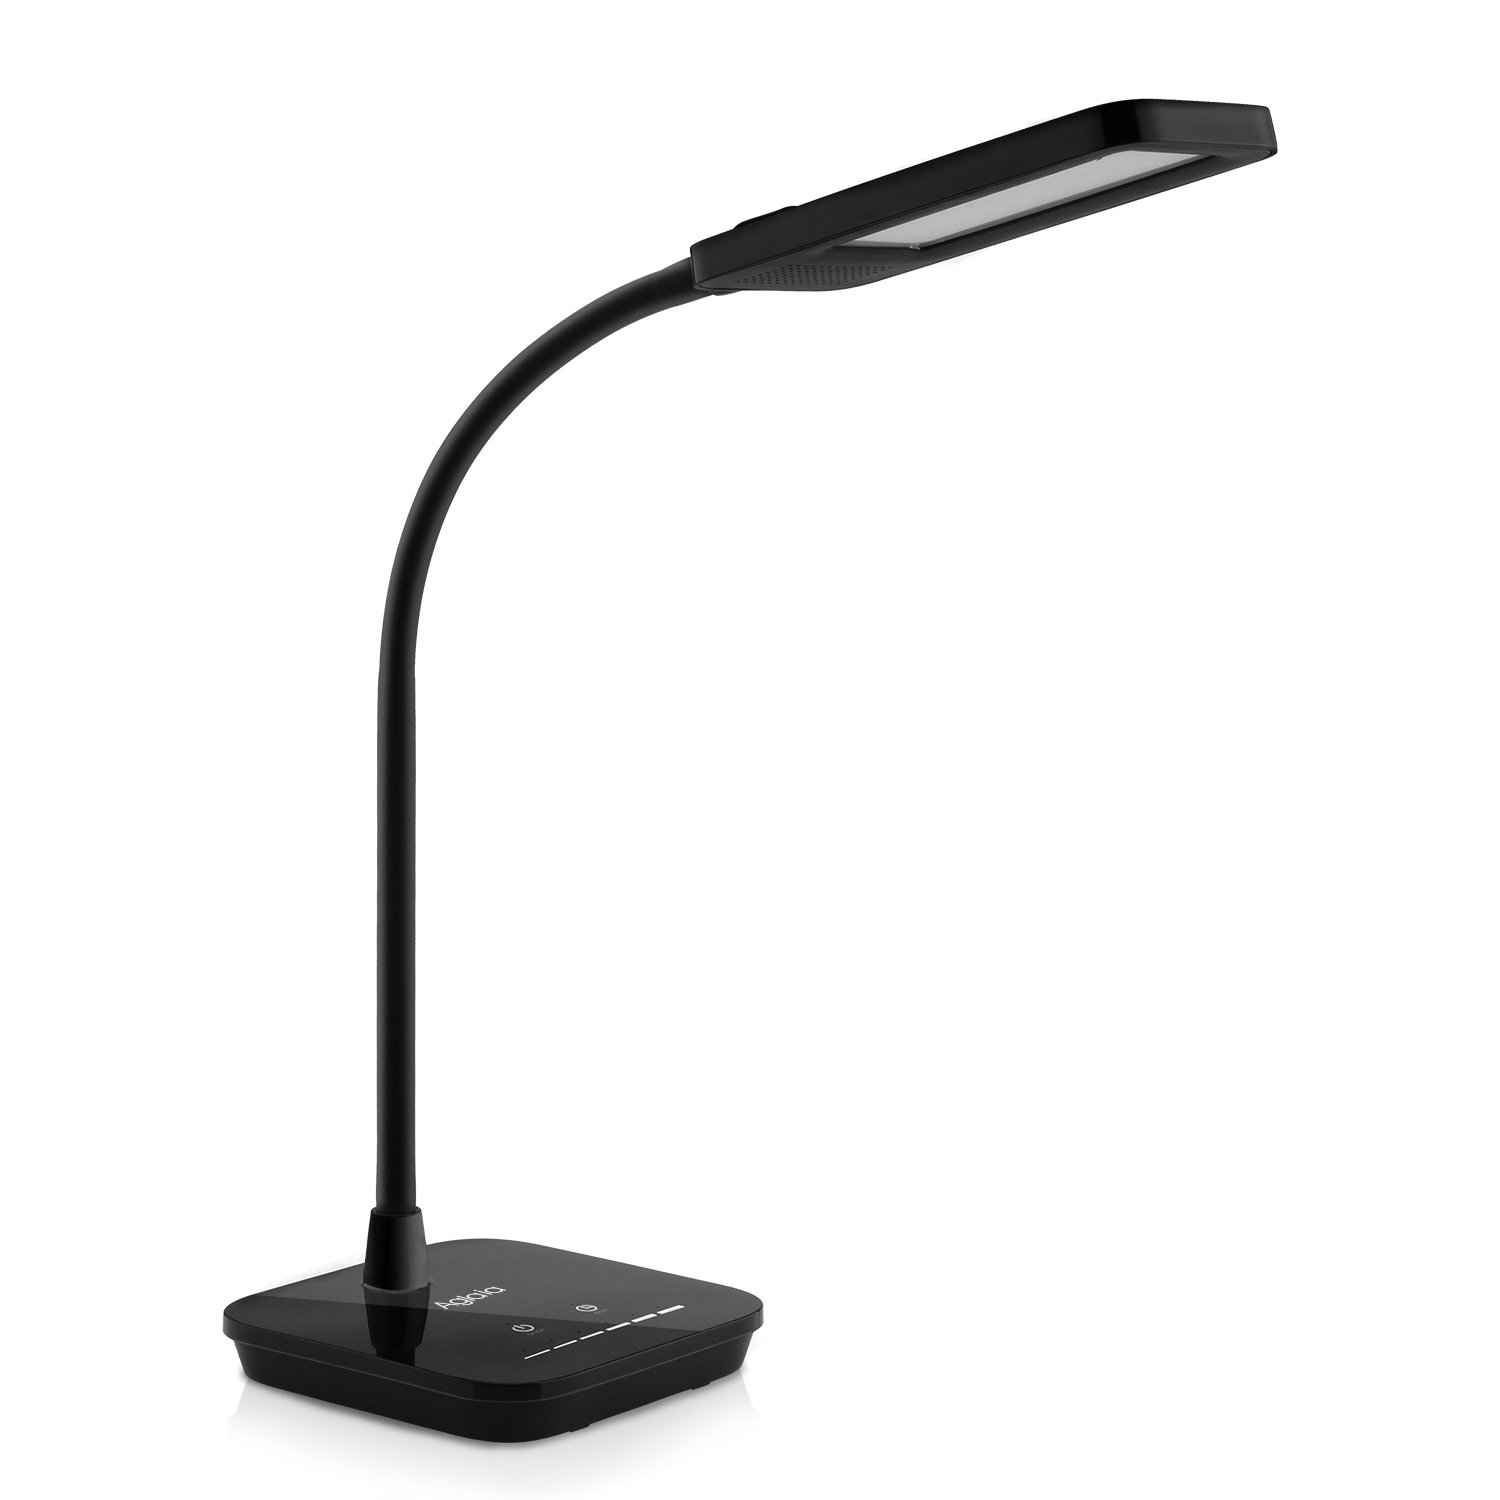 aglaia reading lamp desk lamp led with touch control flexible